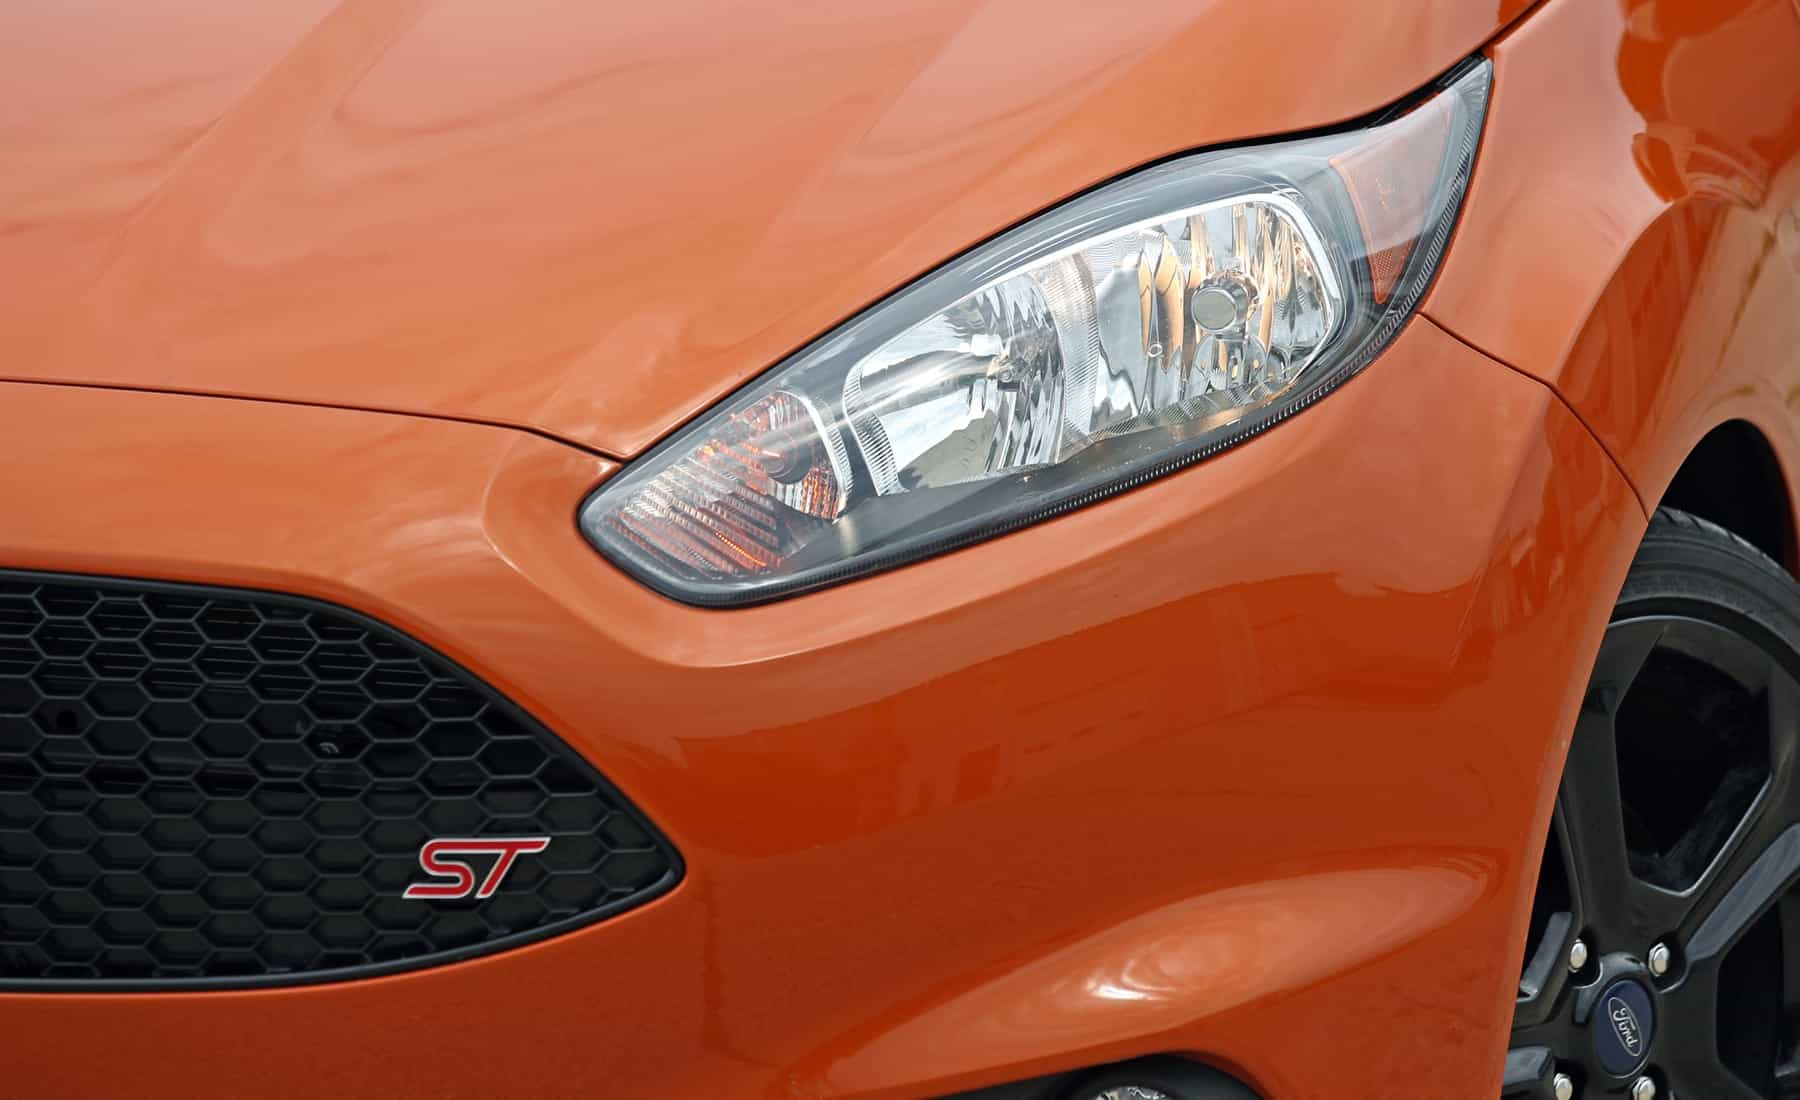 2017 Ford Fiesta ST Exterior View Headlight (Photo 10 of 47)